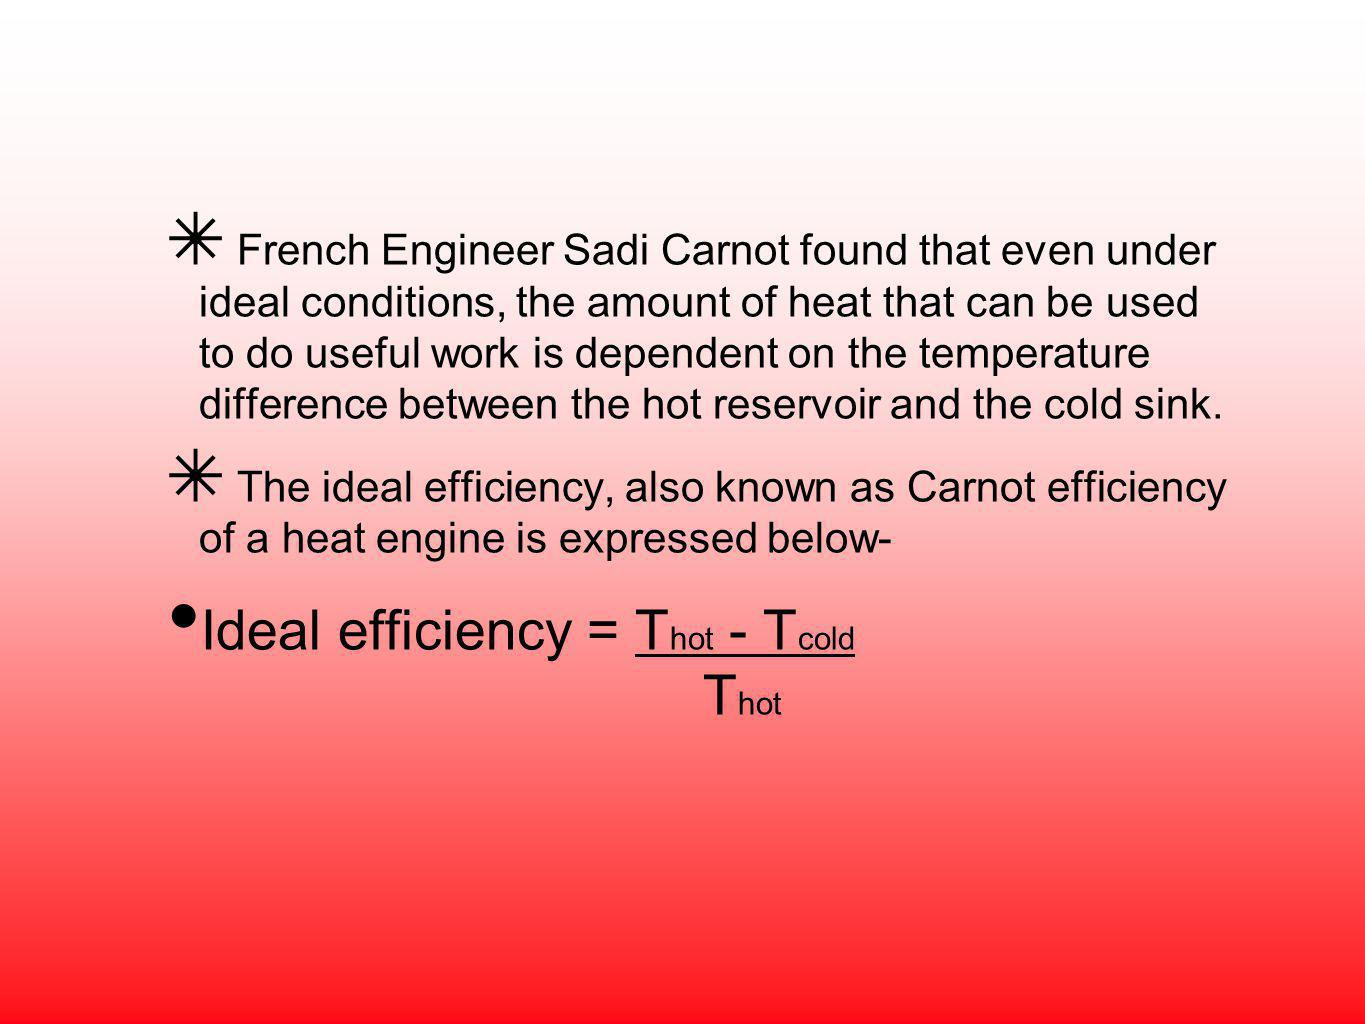 Ideal efficiency = Thot - Tcold Thot